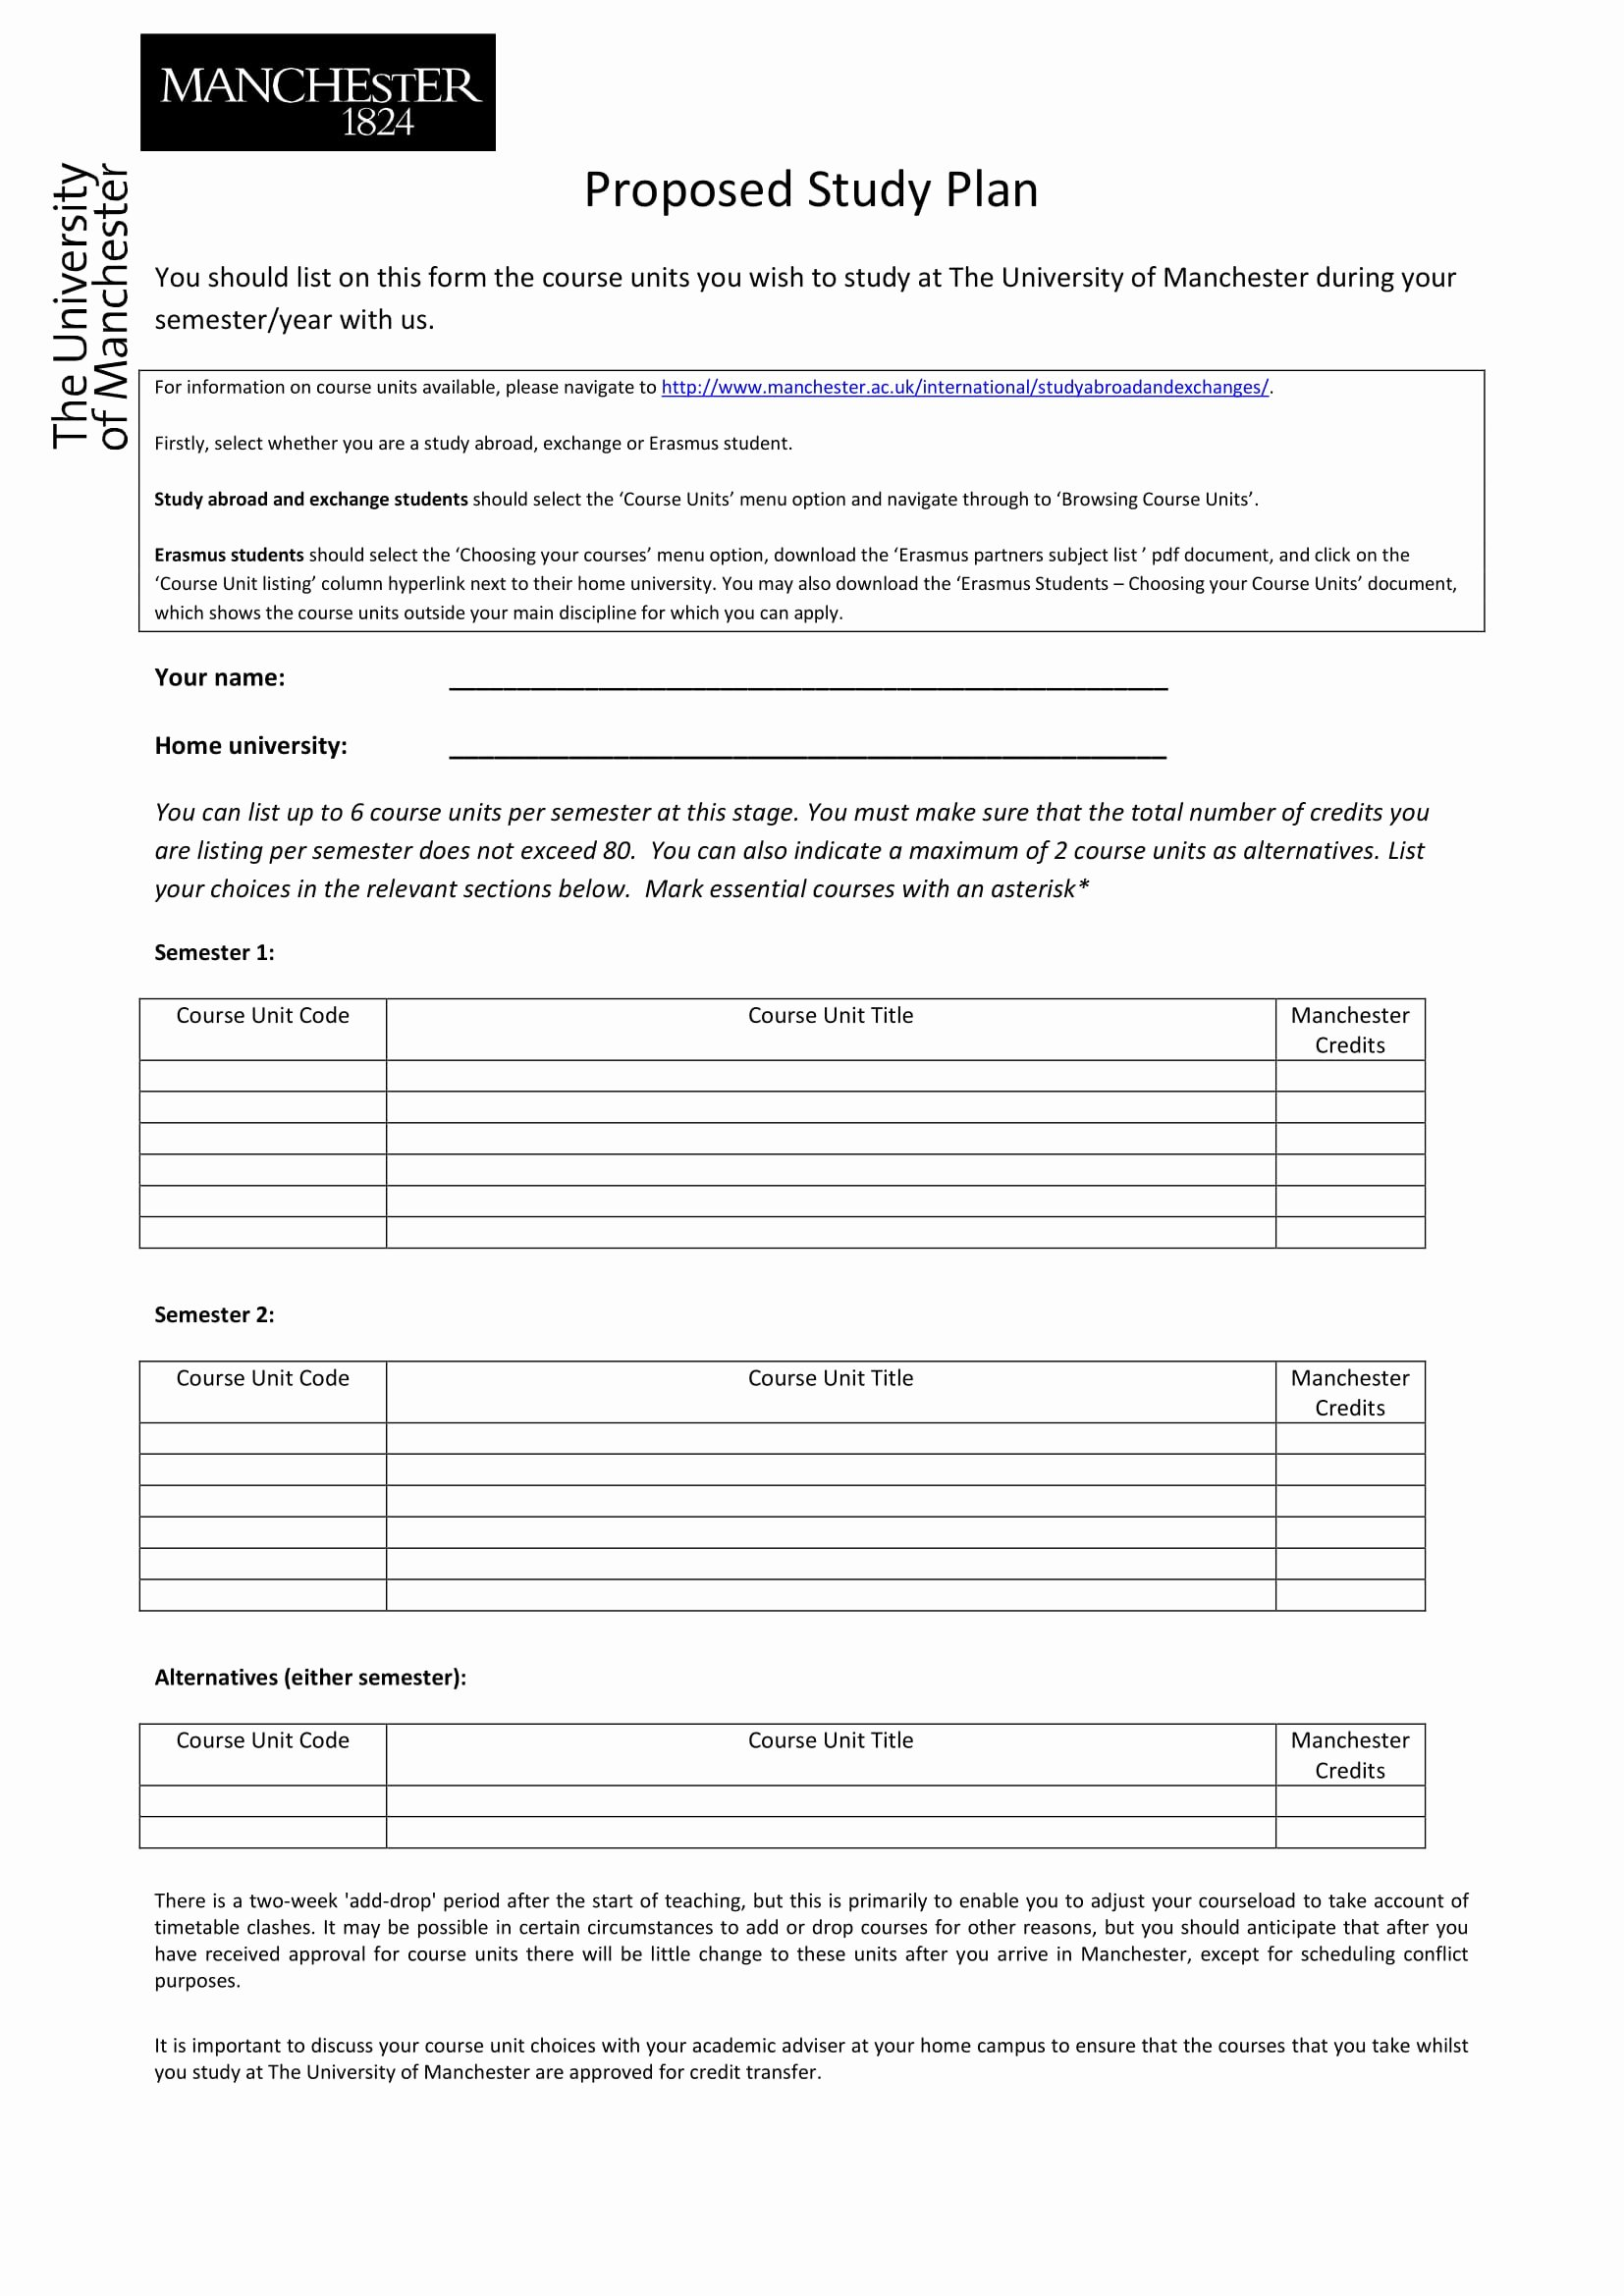 Study Plan Template for Students Inspirational 9 Study Plan Templates and Examples Pdf